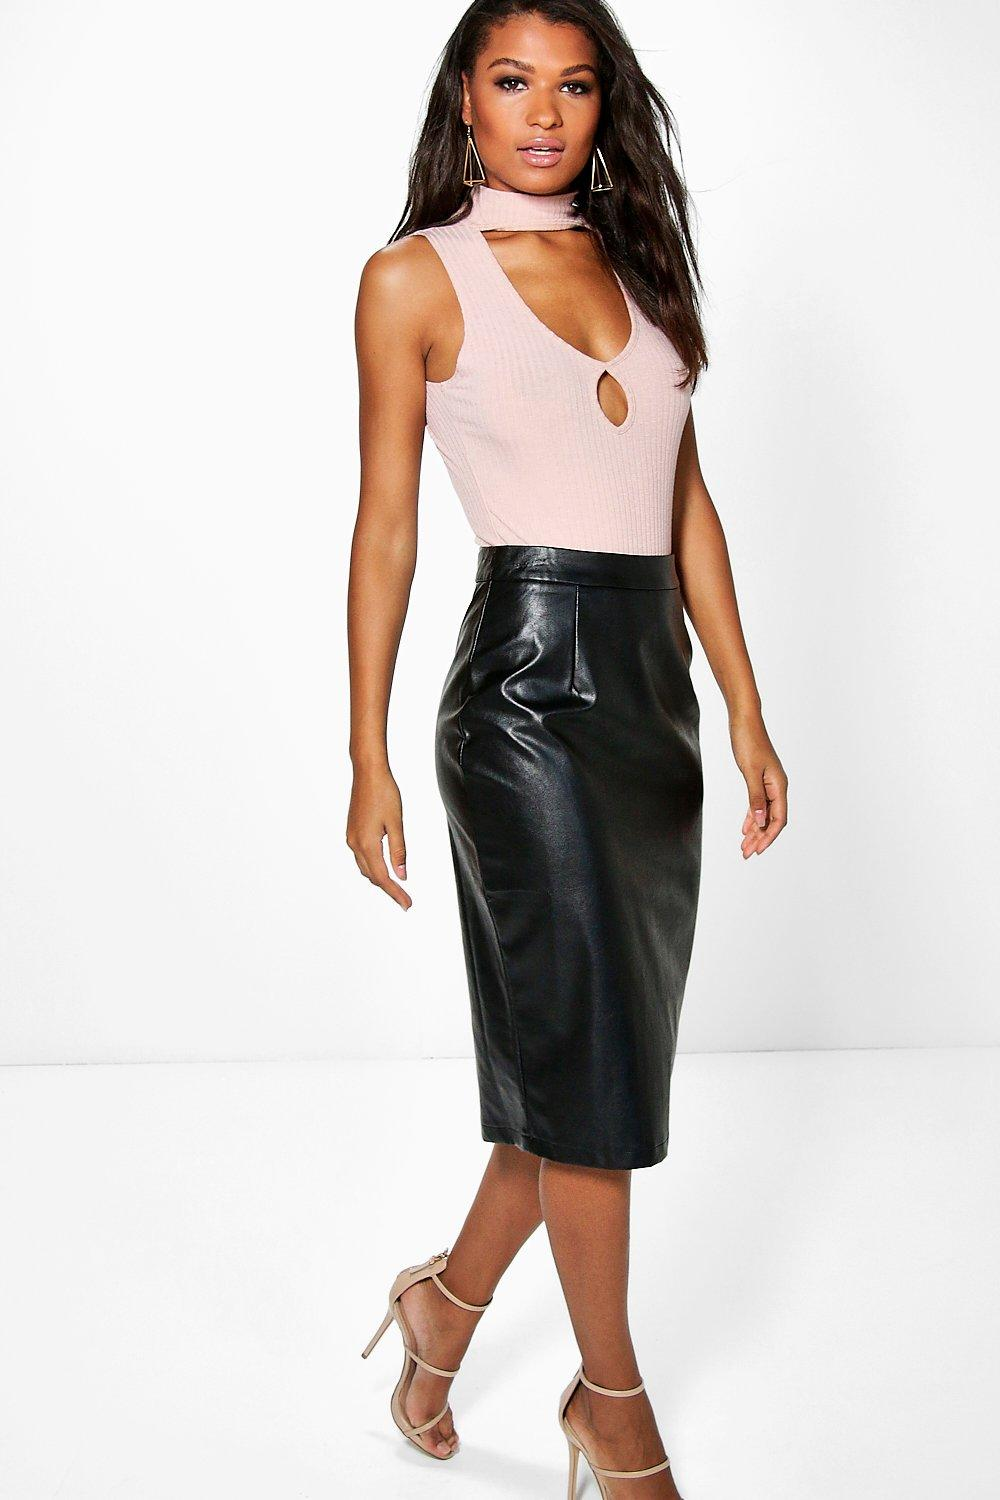 Bahati Leather Look Pencil Midi Skirt